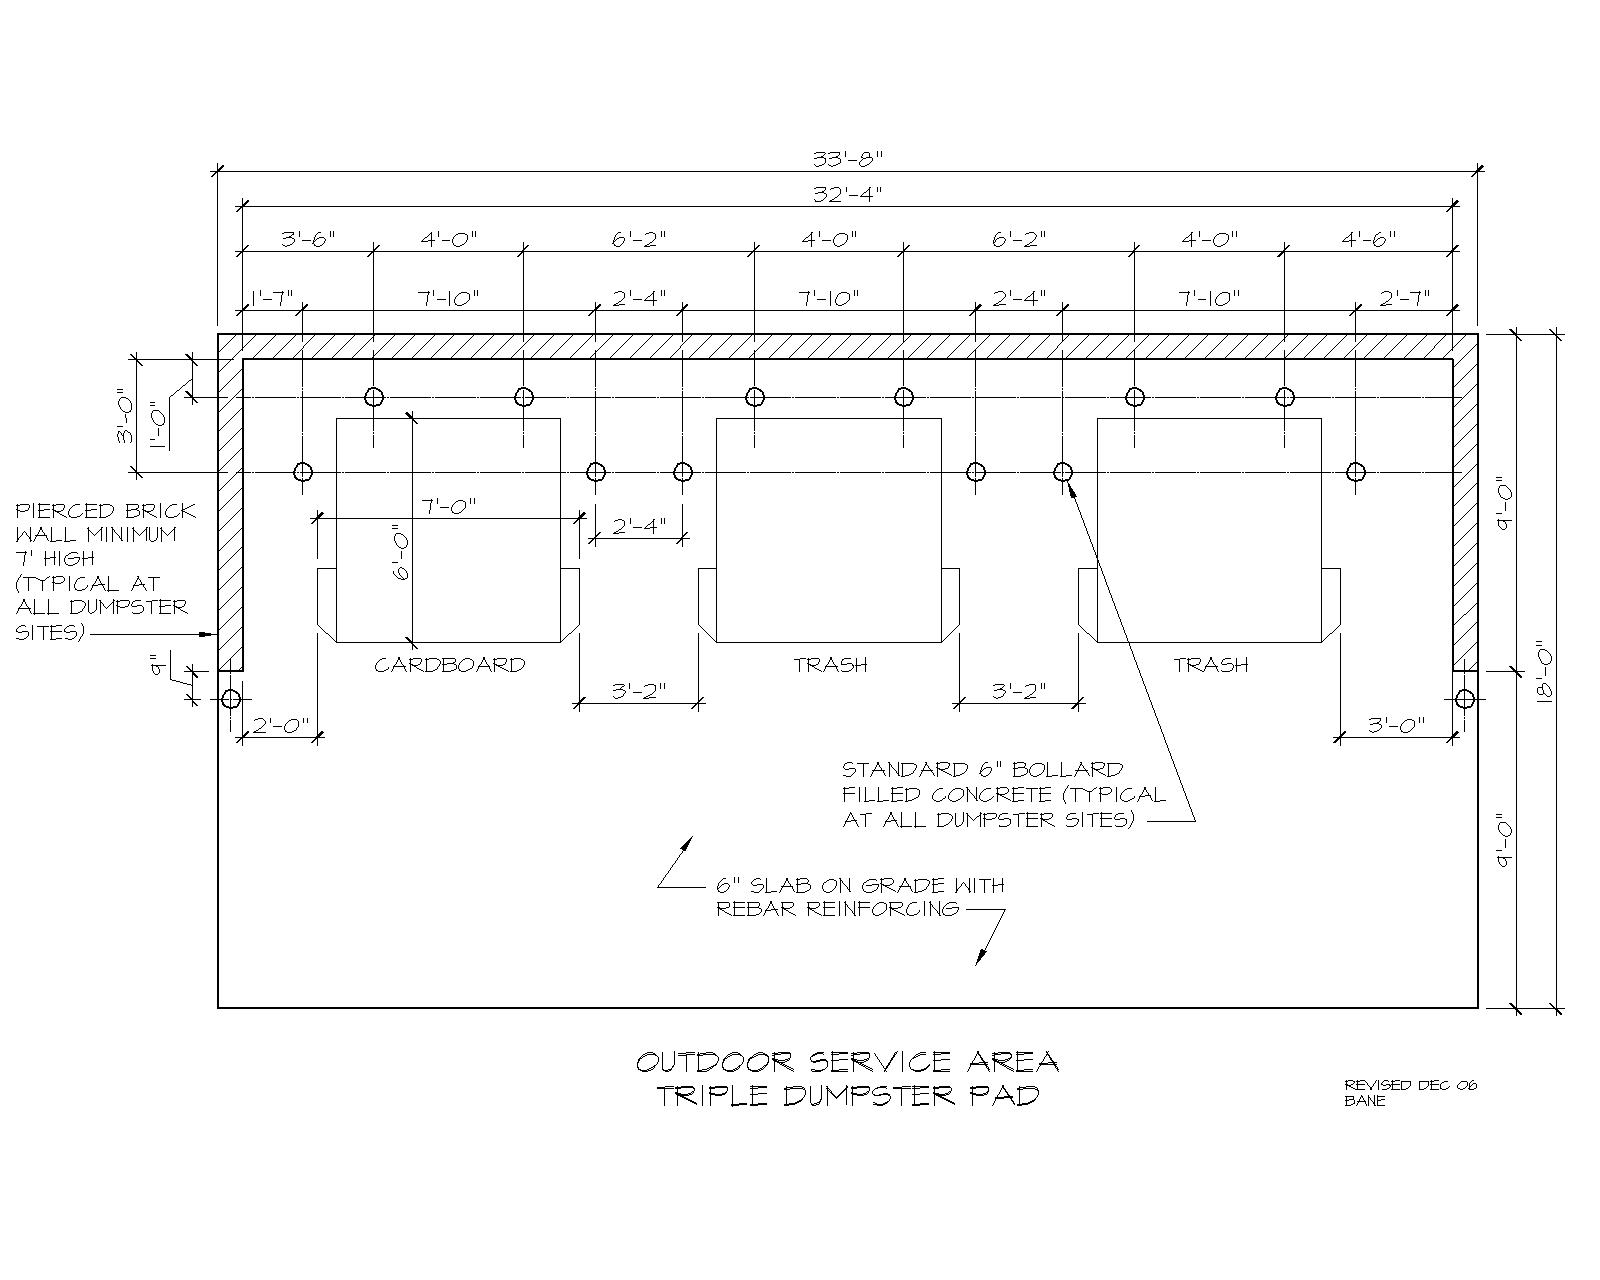 Waste Handling Details Amp Drawings Facilities Services